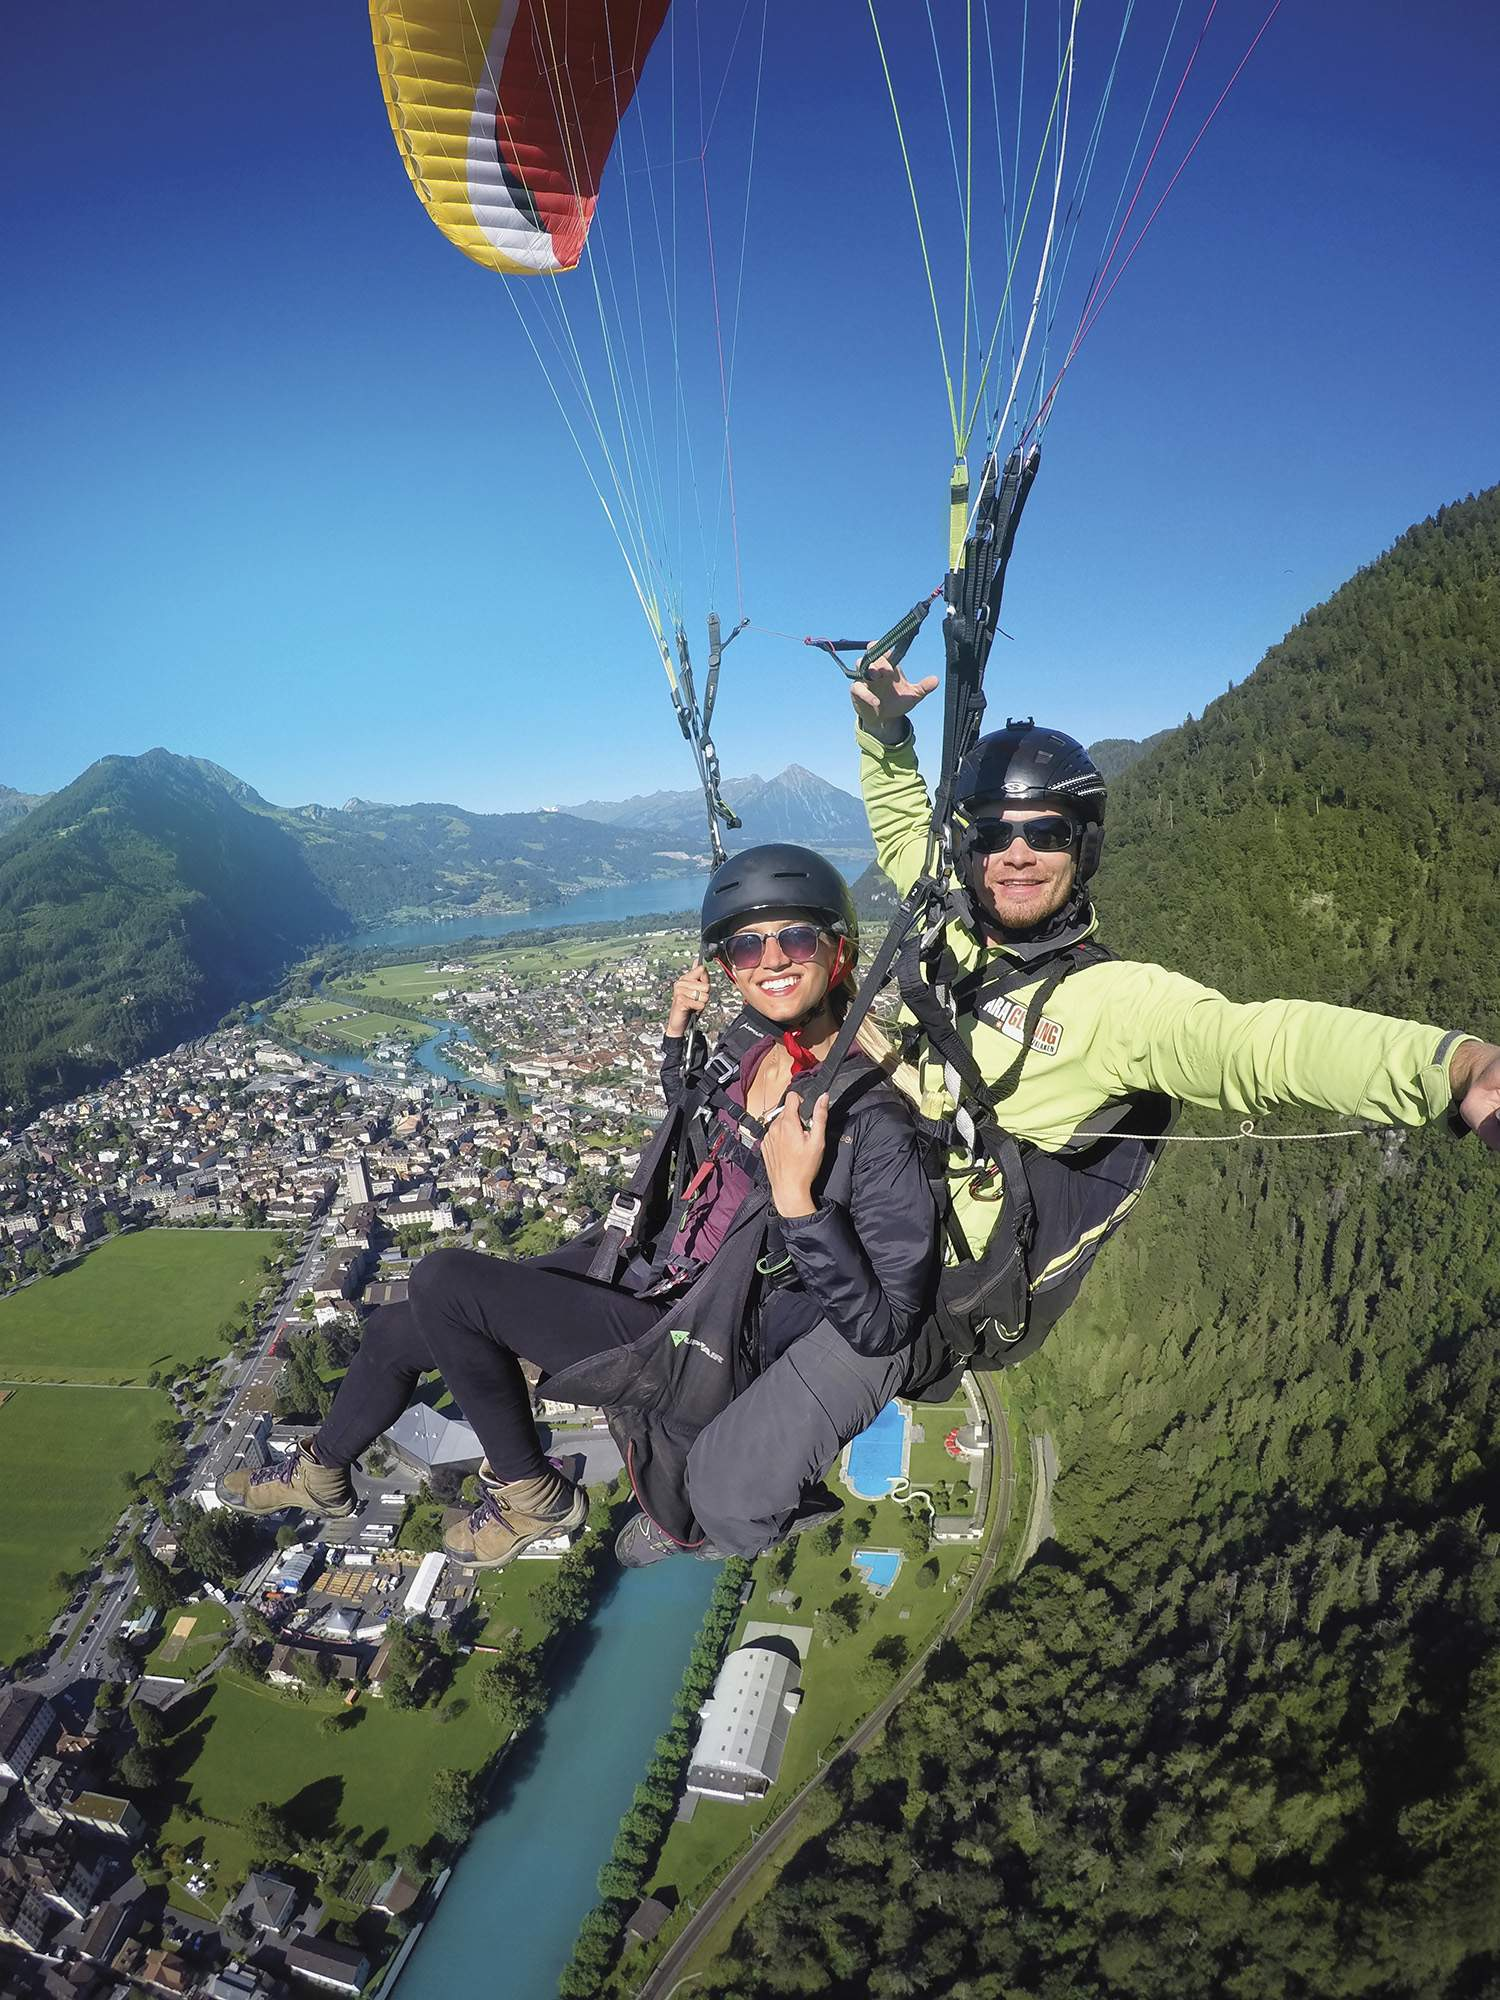 Lexie paragliding at Interlaken, Switzerland